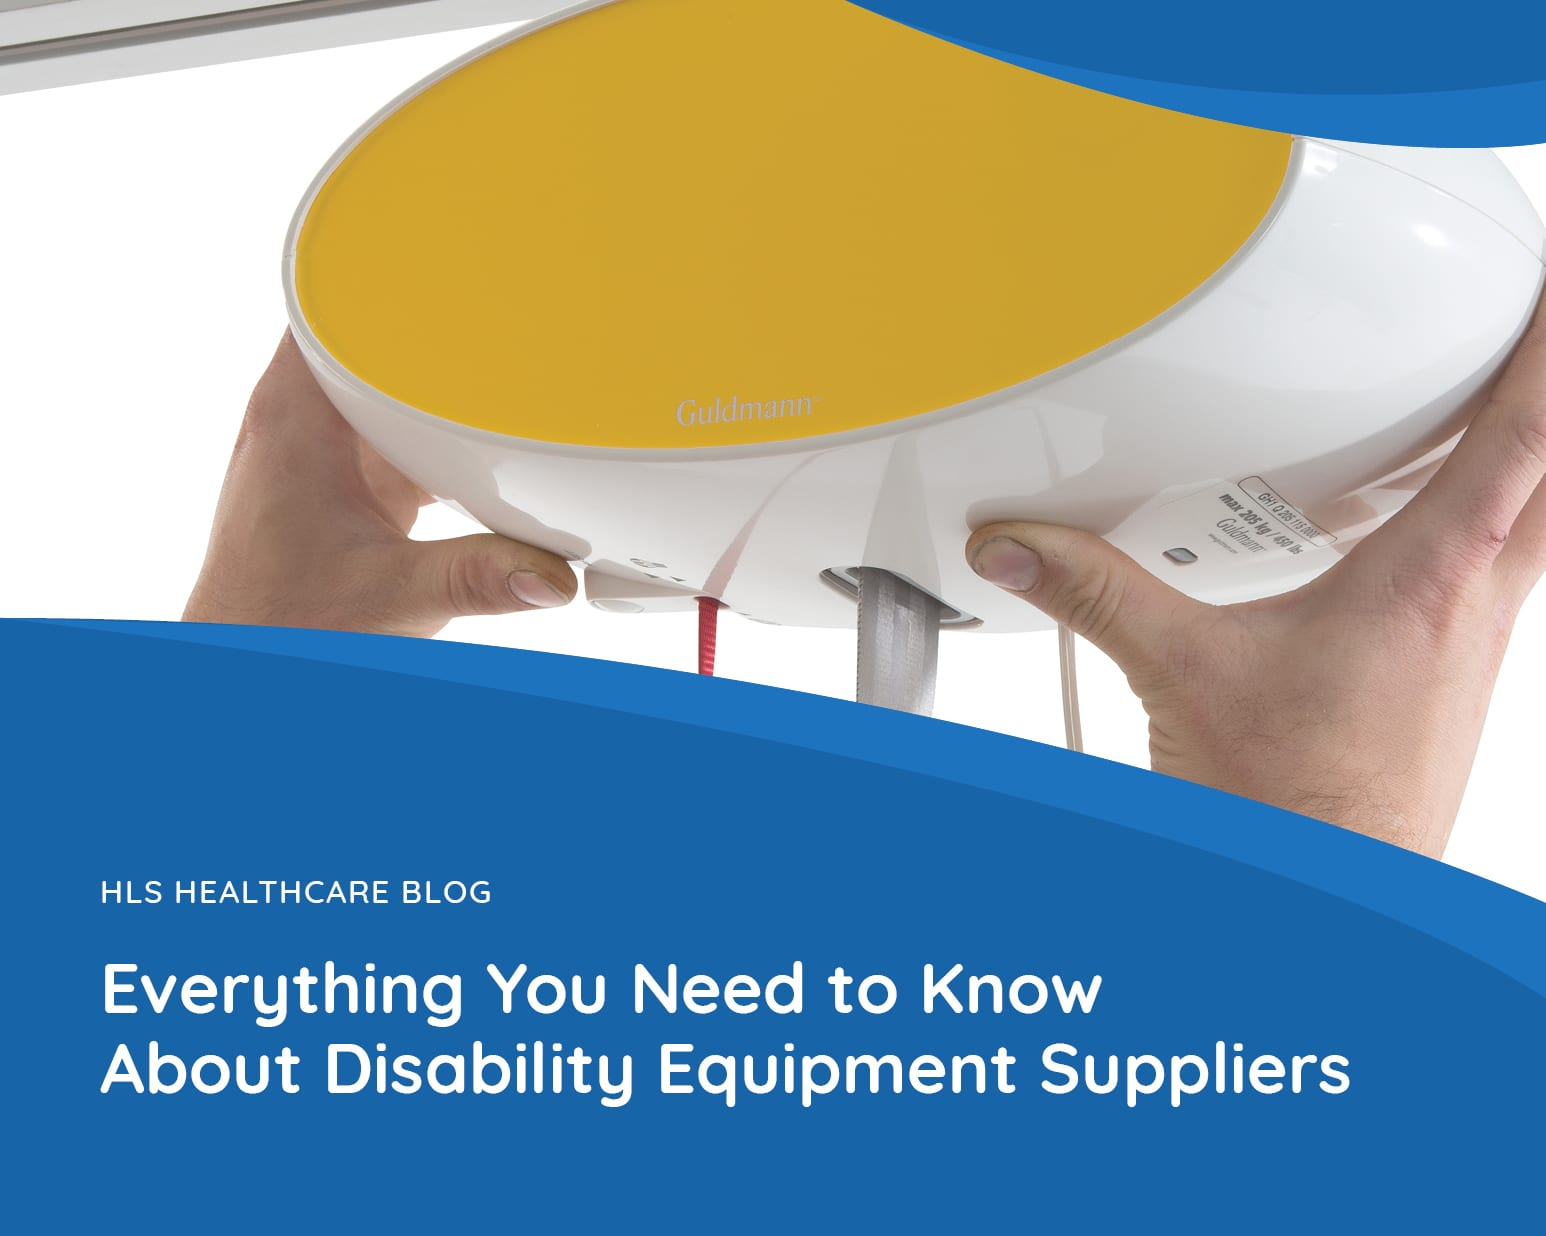 Everything You Need to Know about Disability Equipment Suppliers